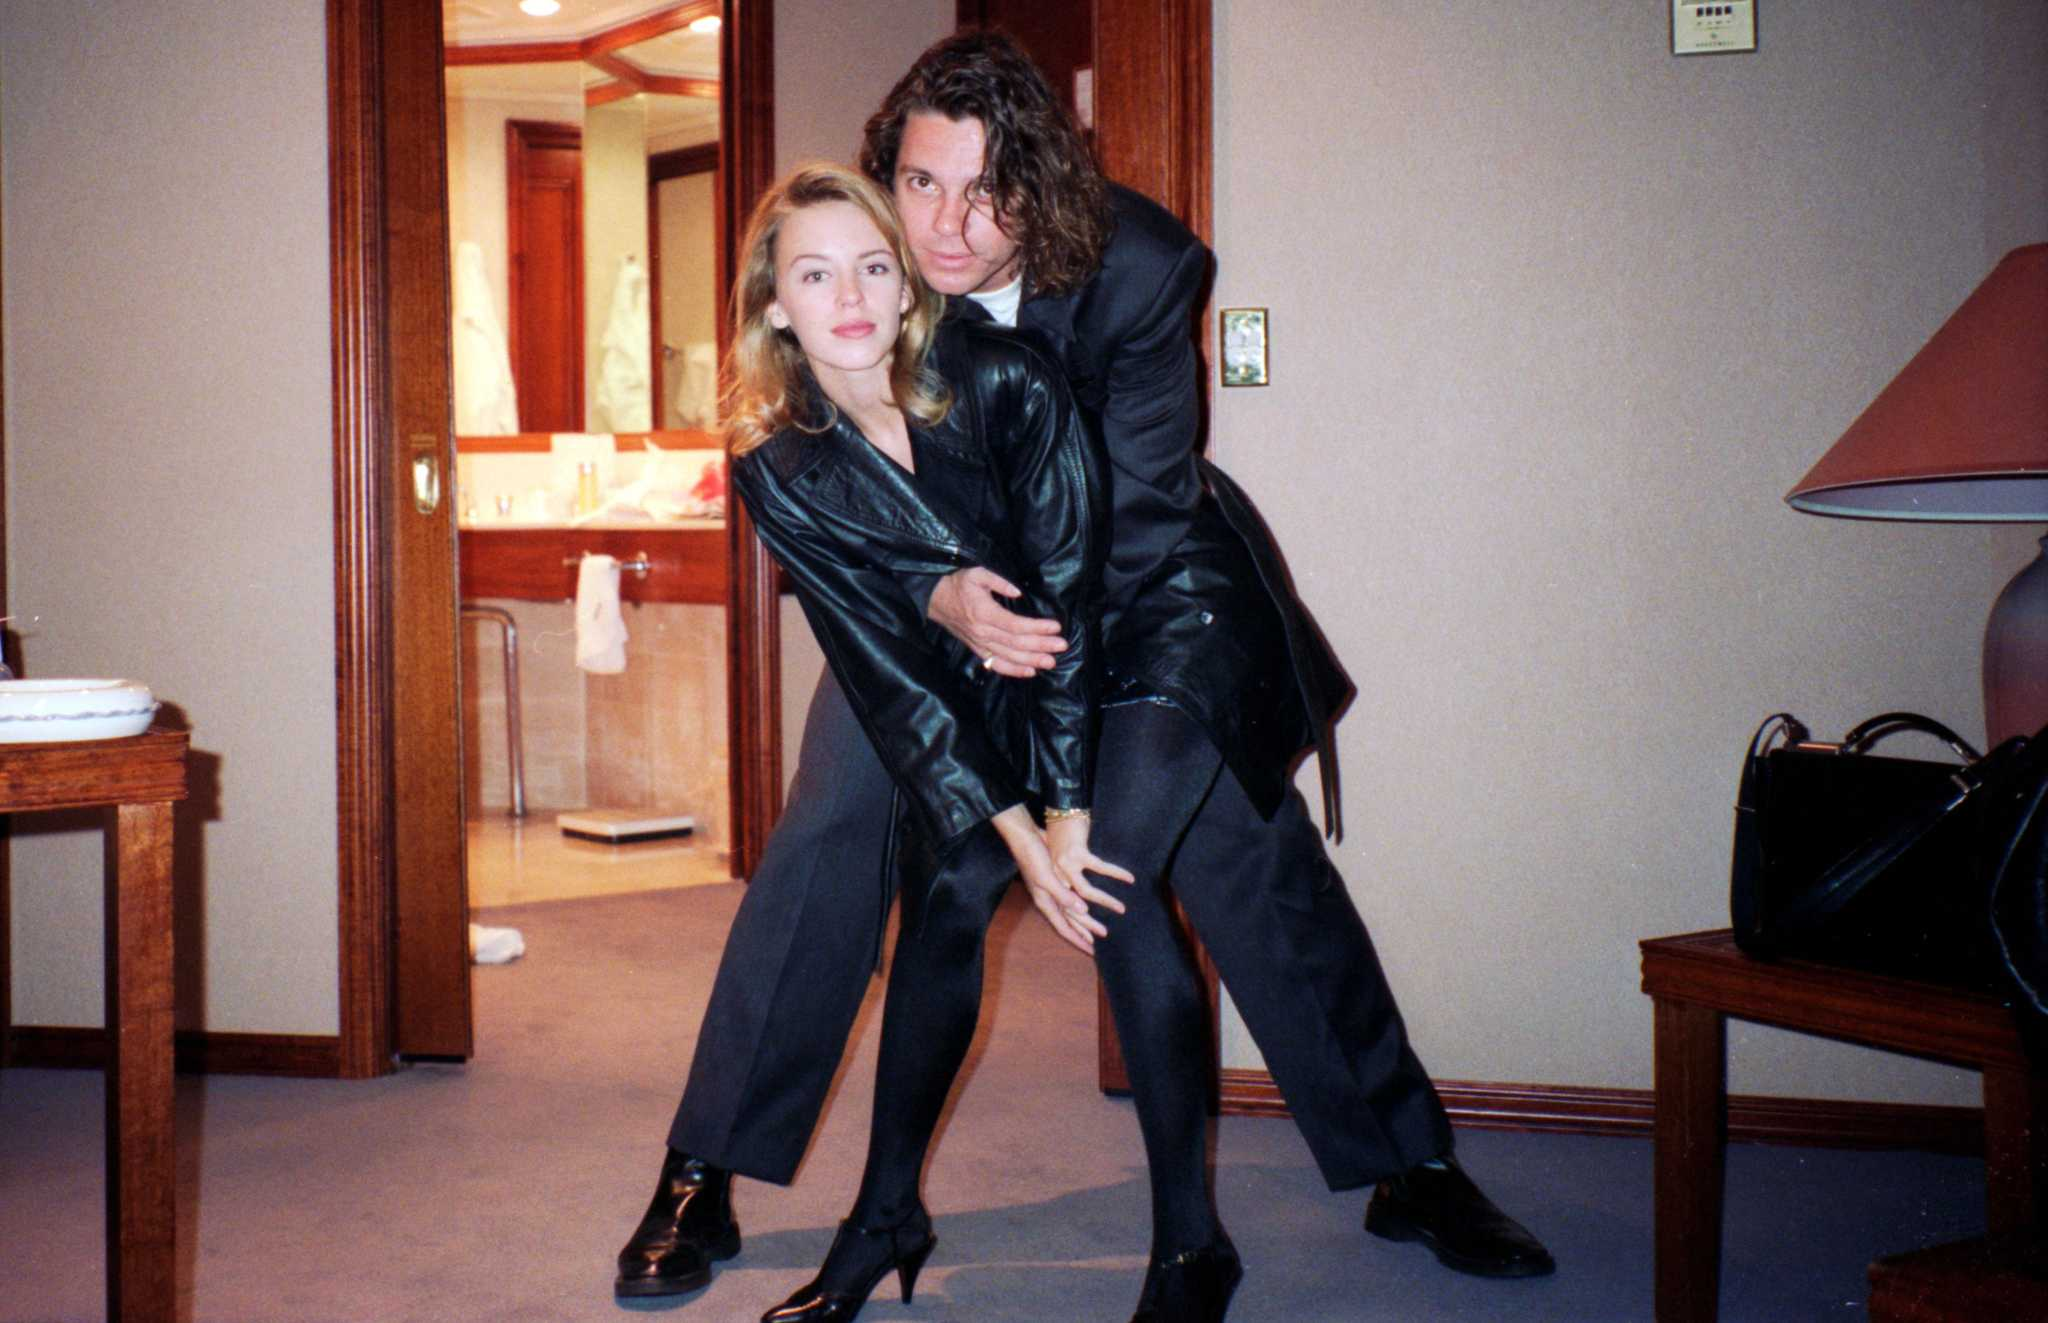 Documentary explores the mystery of INXS singer Michael Hutchence